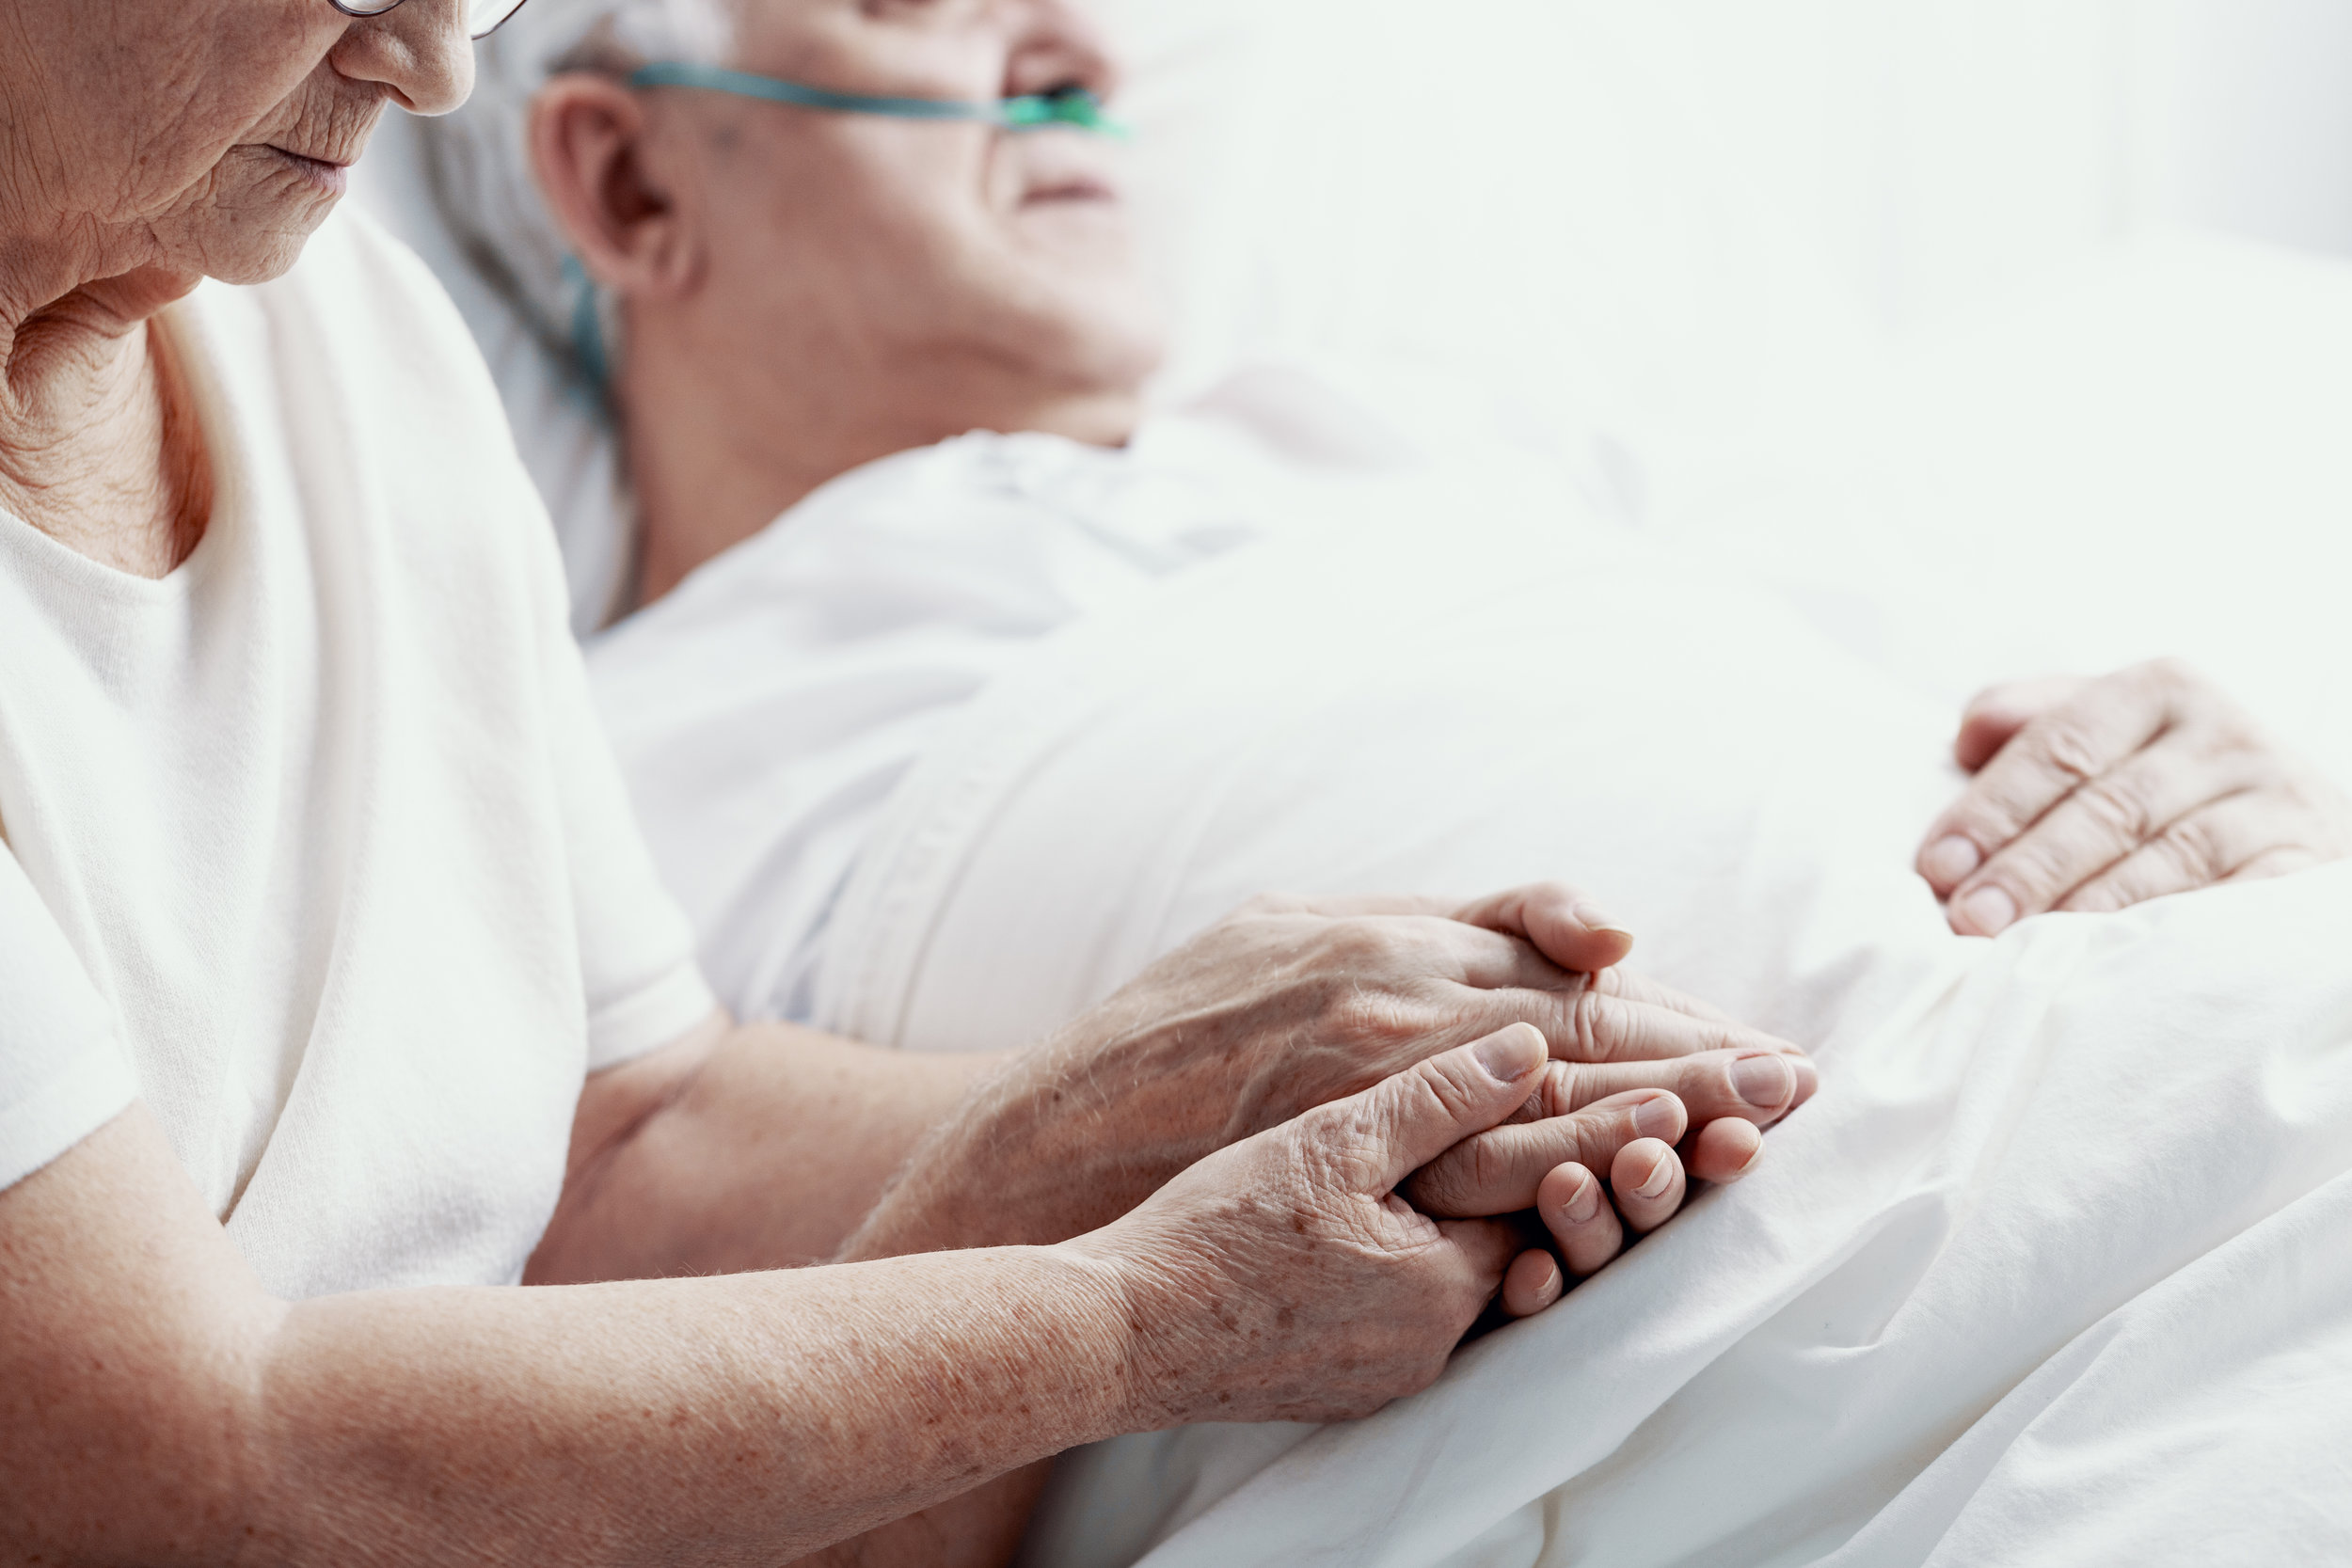 Advanced Care Planning - Transforming the systems-level culture of care to be more consistent with patient needs, values, and preferences yields meaningful health improvement and lowers the total cost of care.